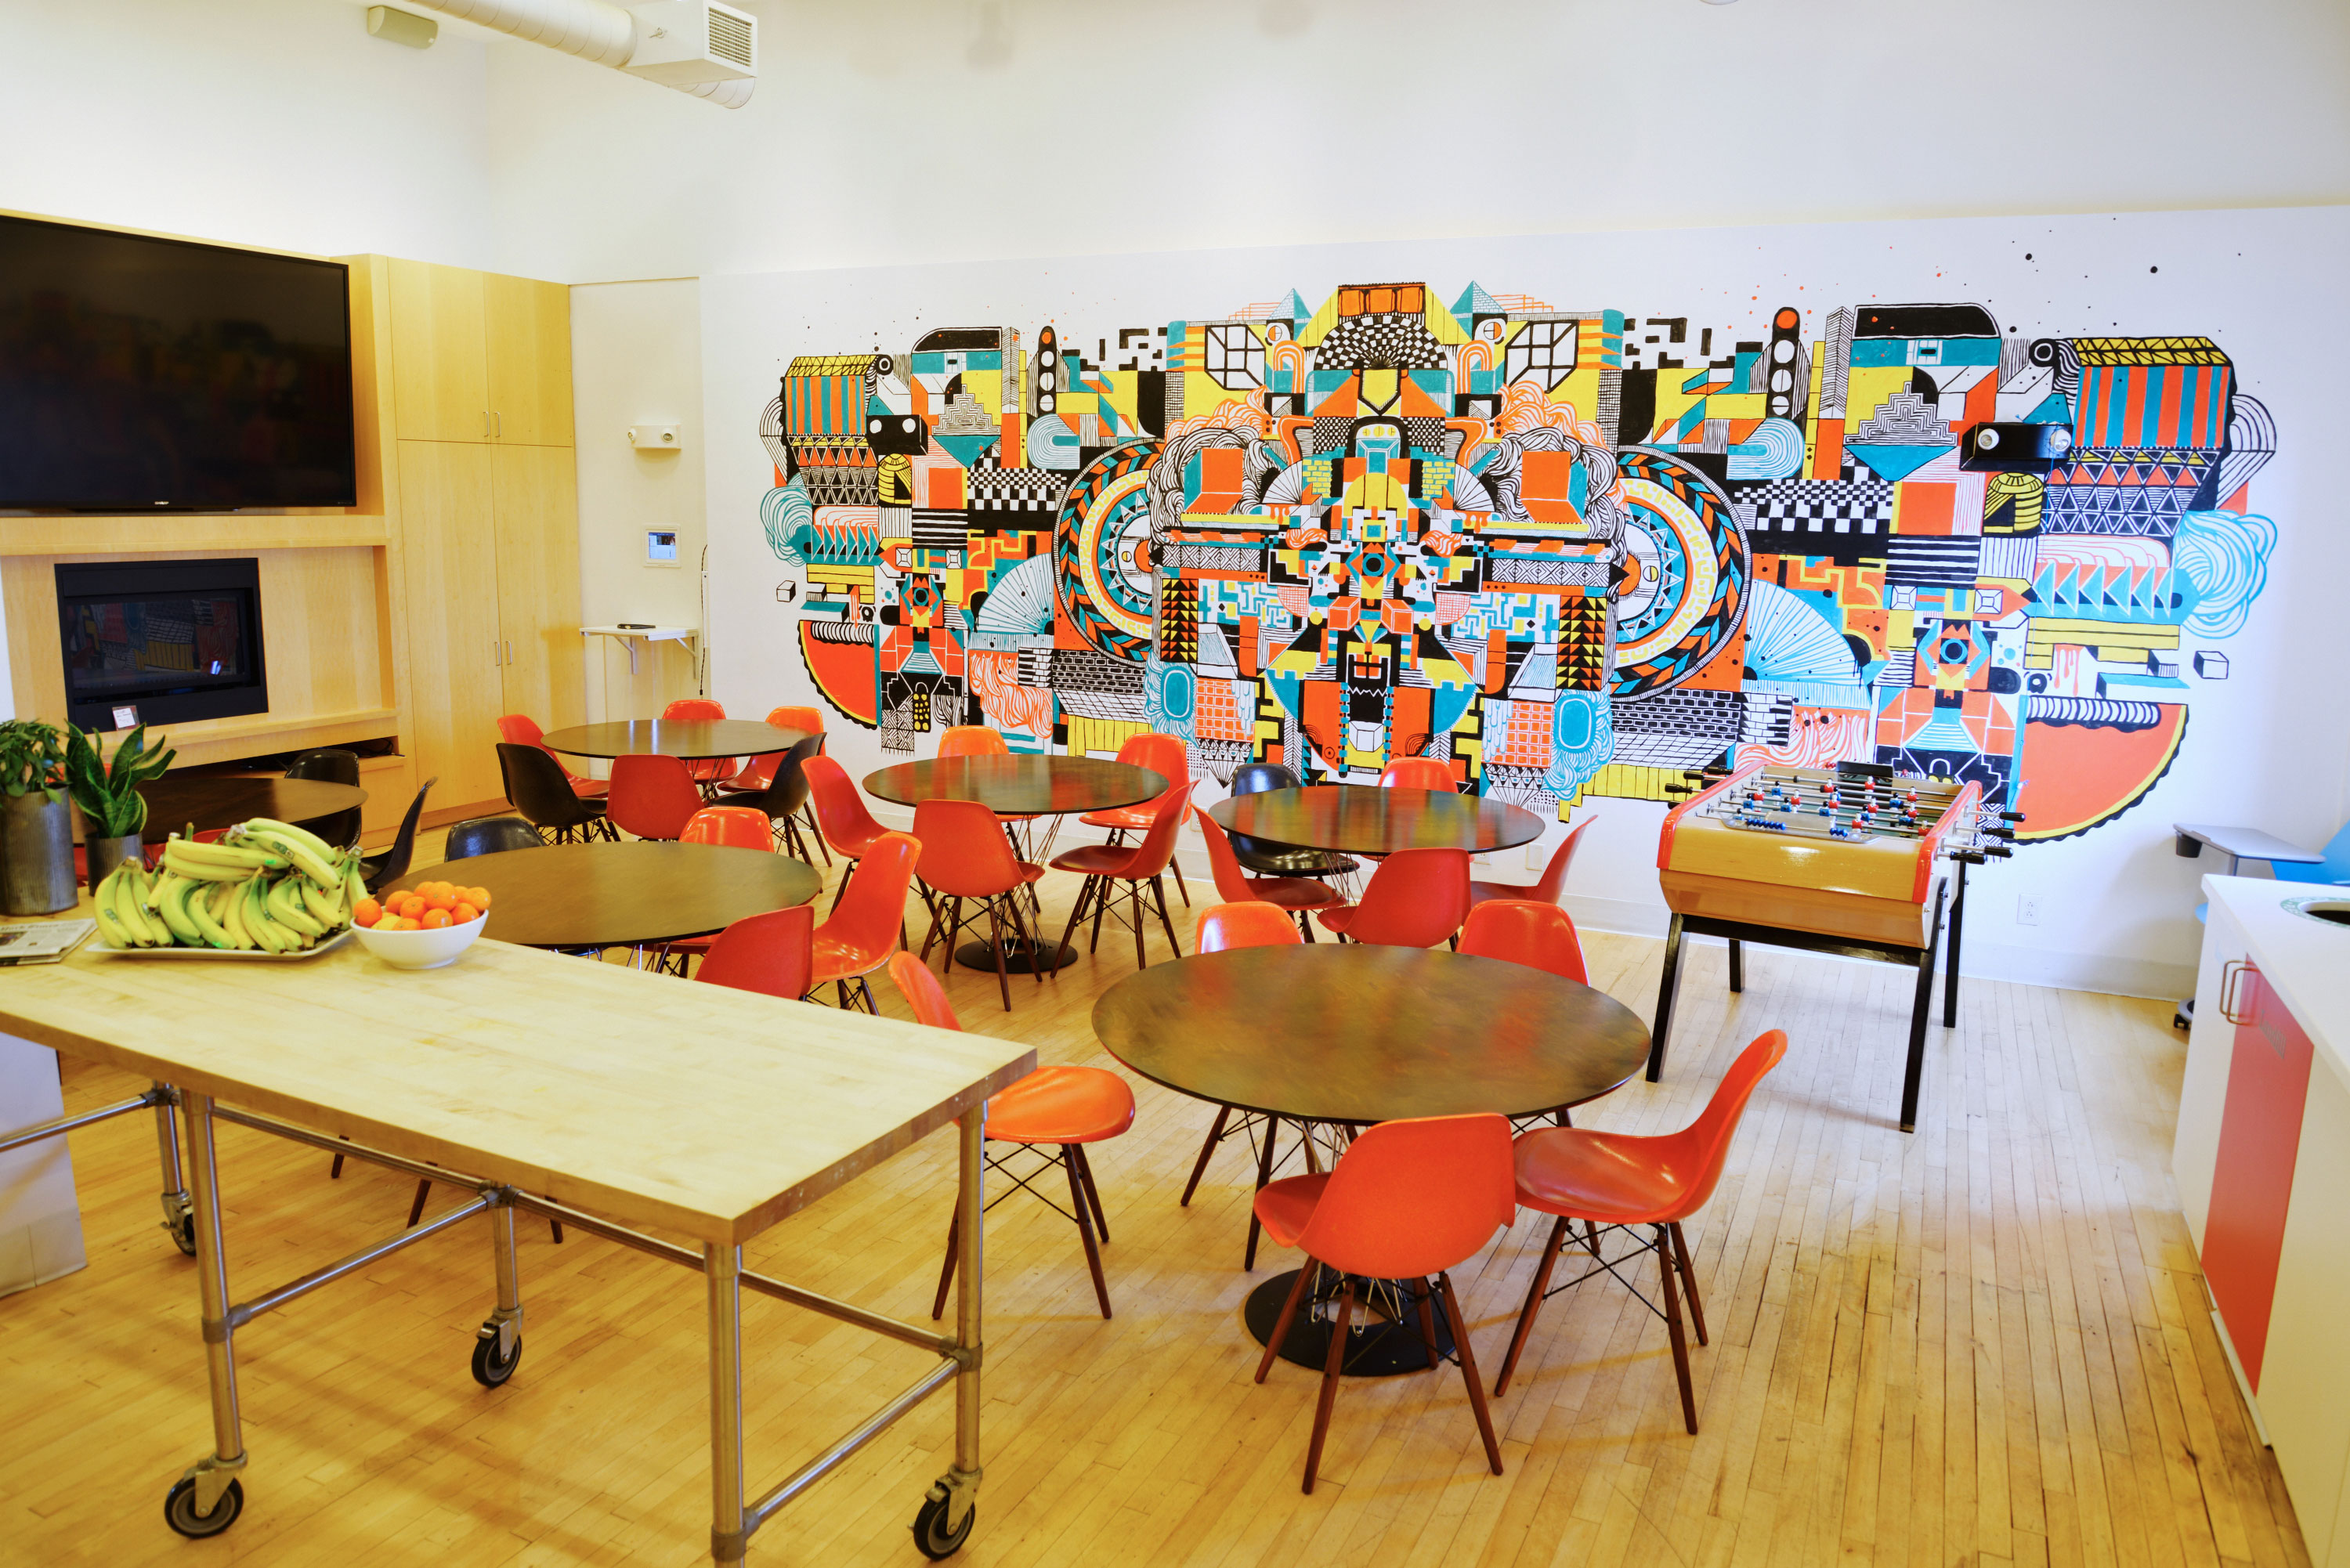 IDEO's Boston office (photo by Nicholas Prakas)